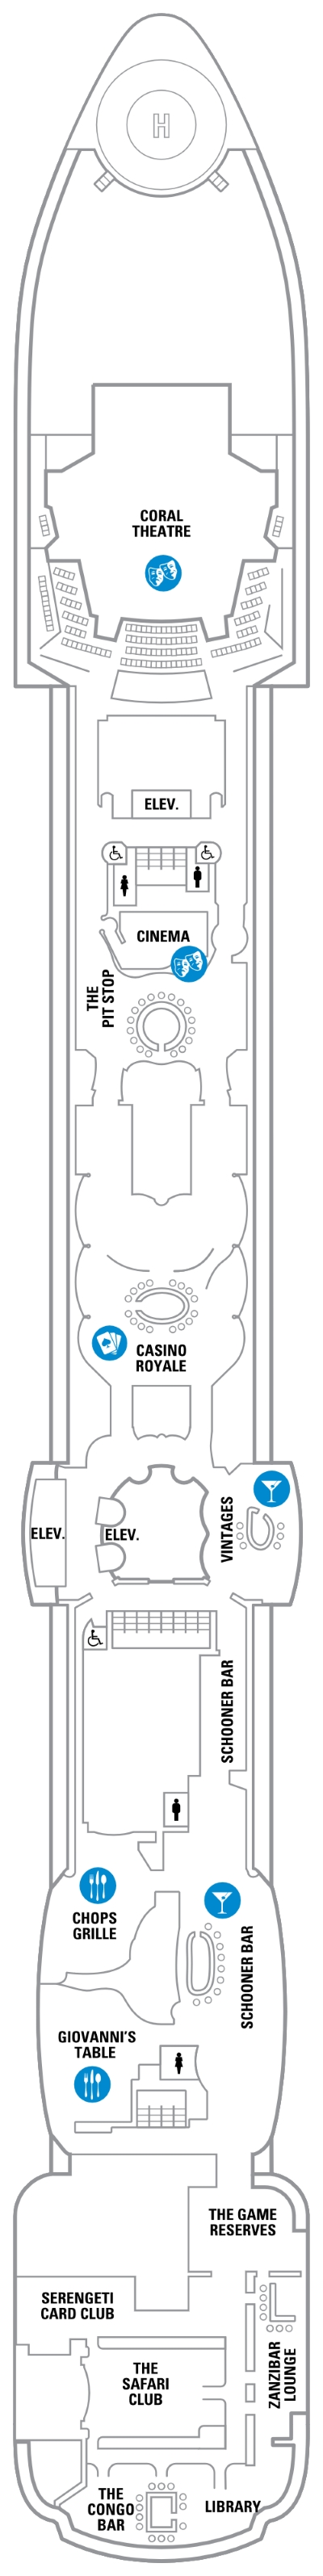 Jewel Of The Seas Deck 6 layout